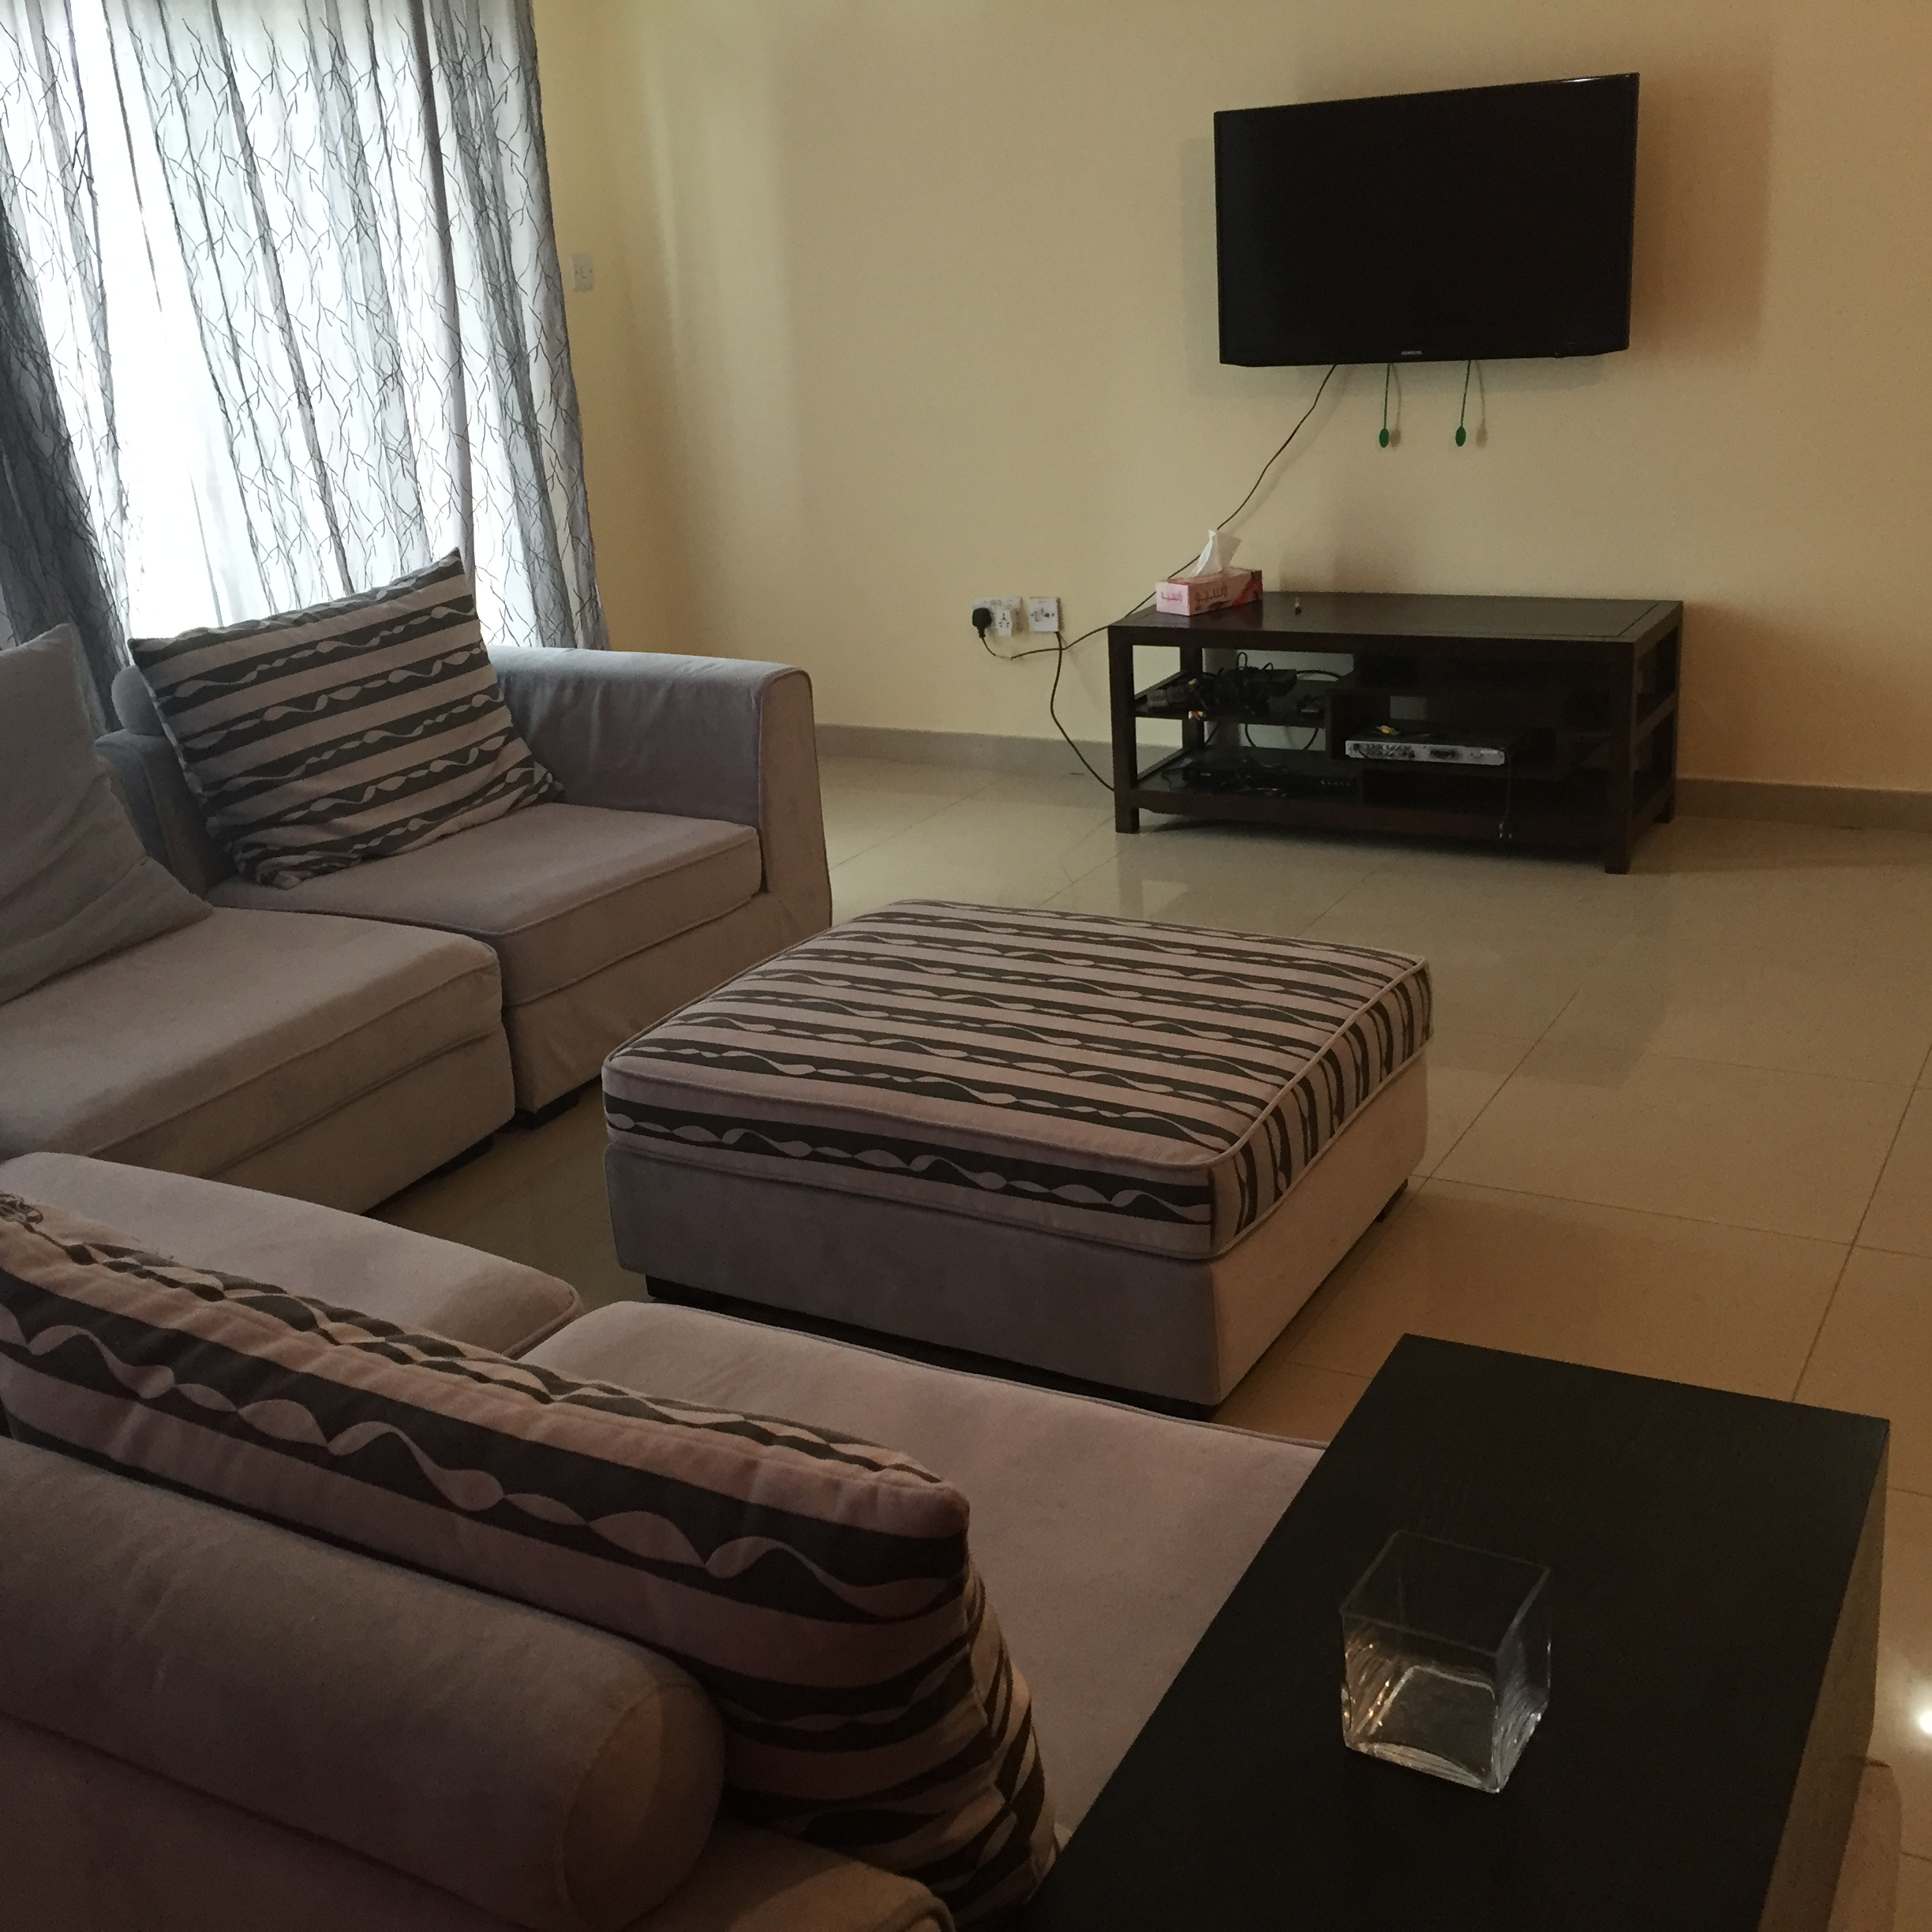 Furnished Apartments For Rent: Elegant Fully Furnished 2 Bedroom Apartment- Rent